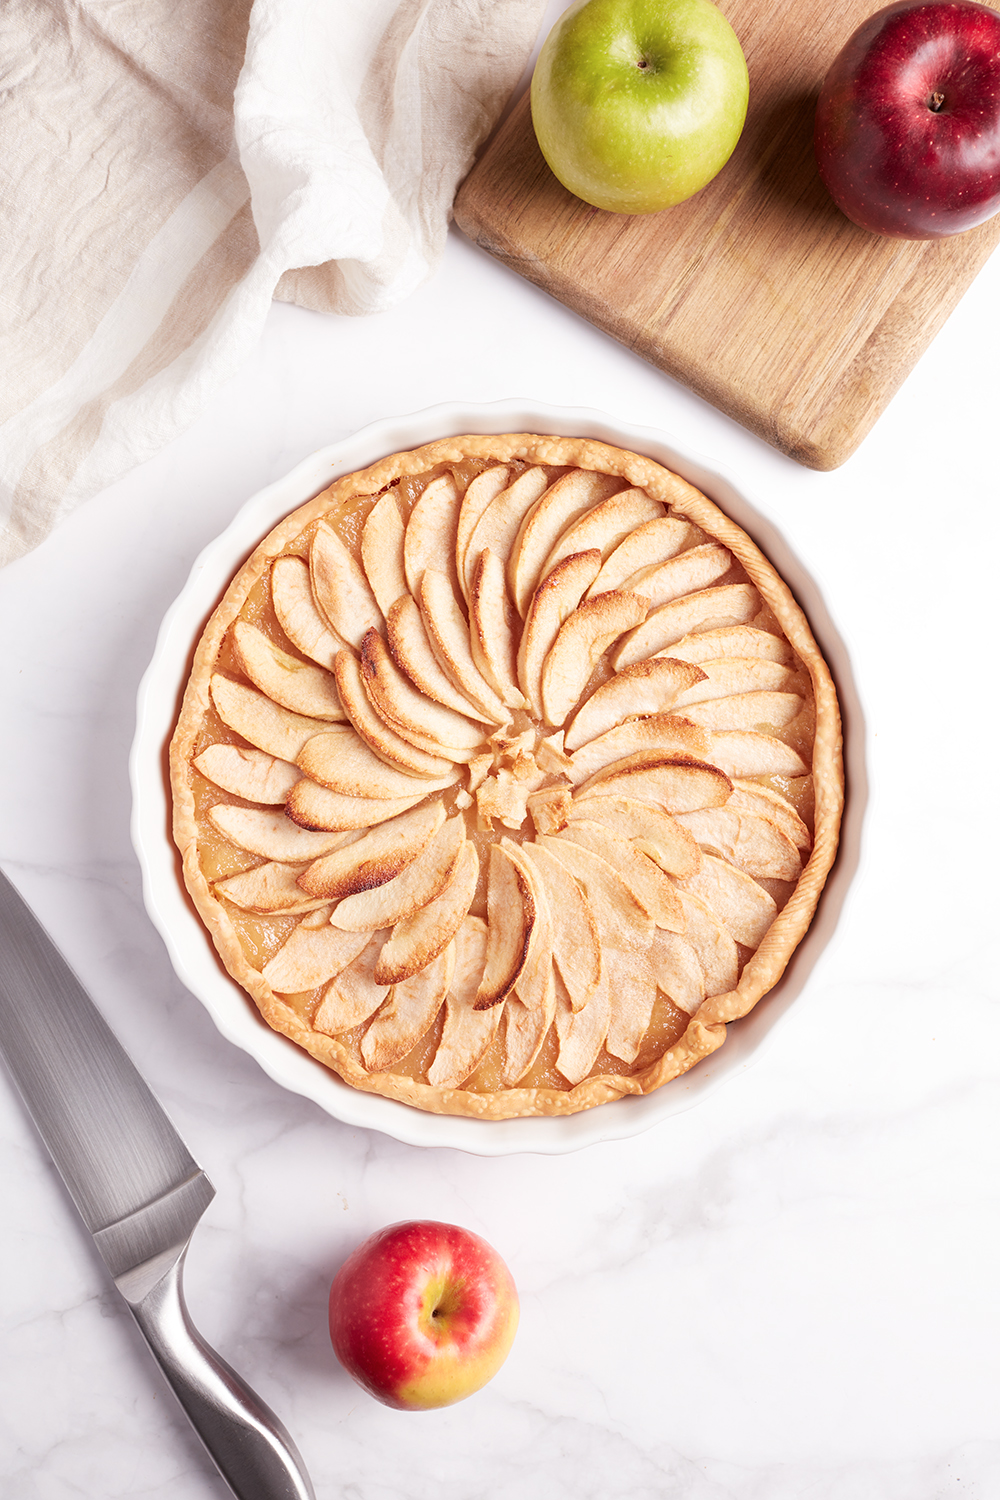 French Apple Tart Tasty And Frenchy